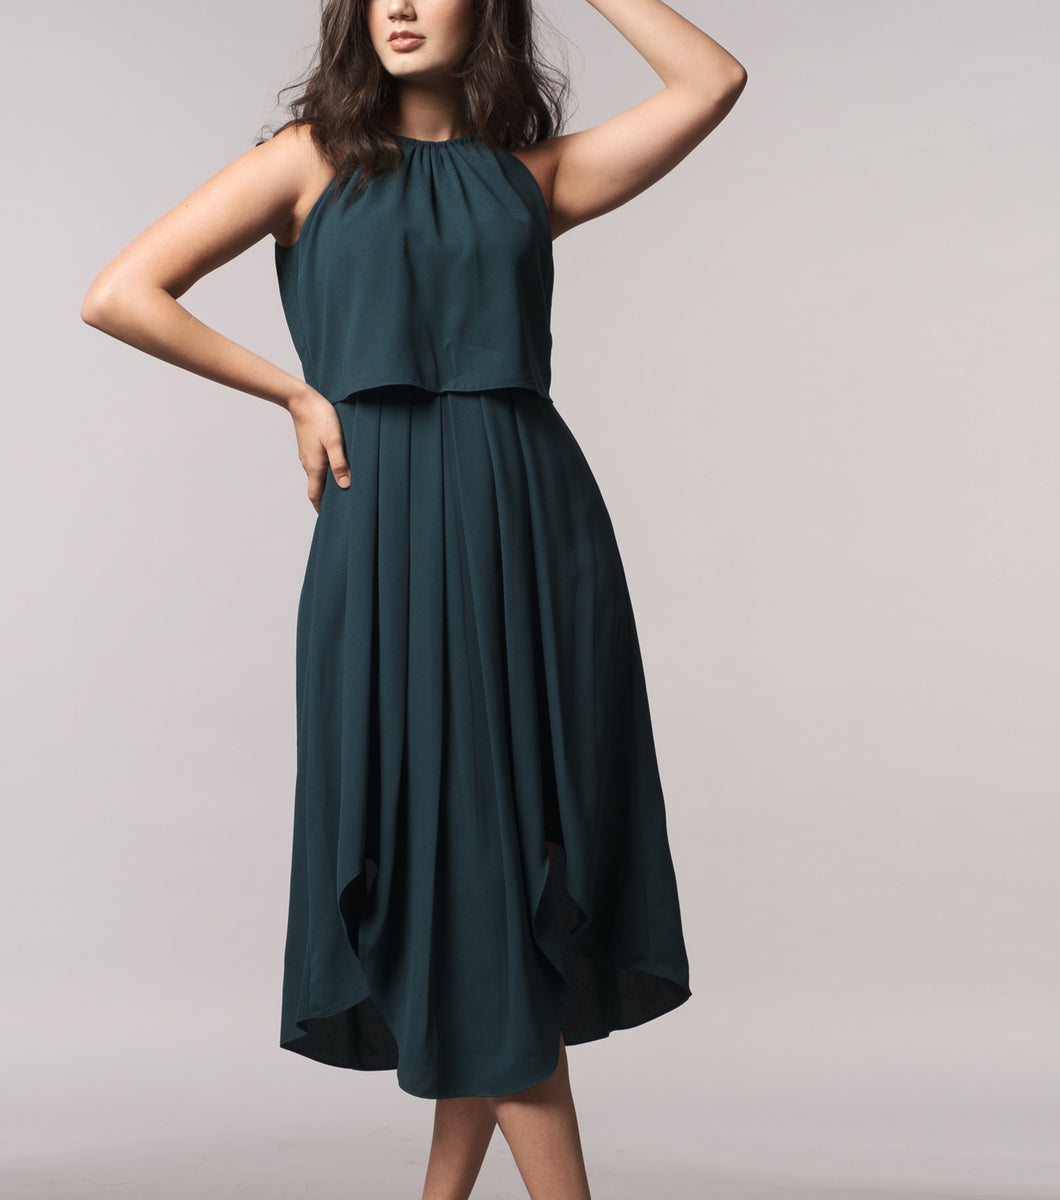 Lenna Layered Halter Dress